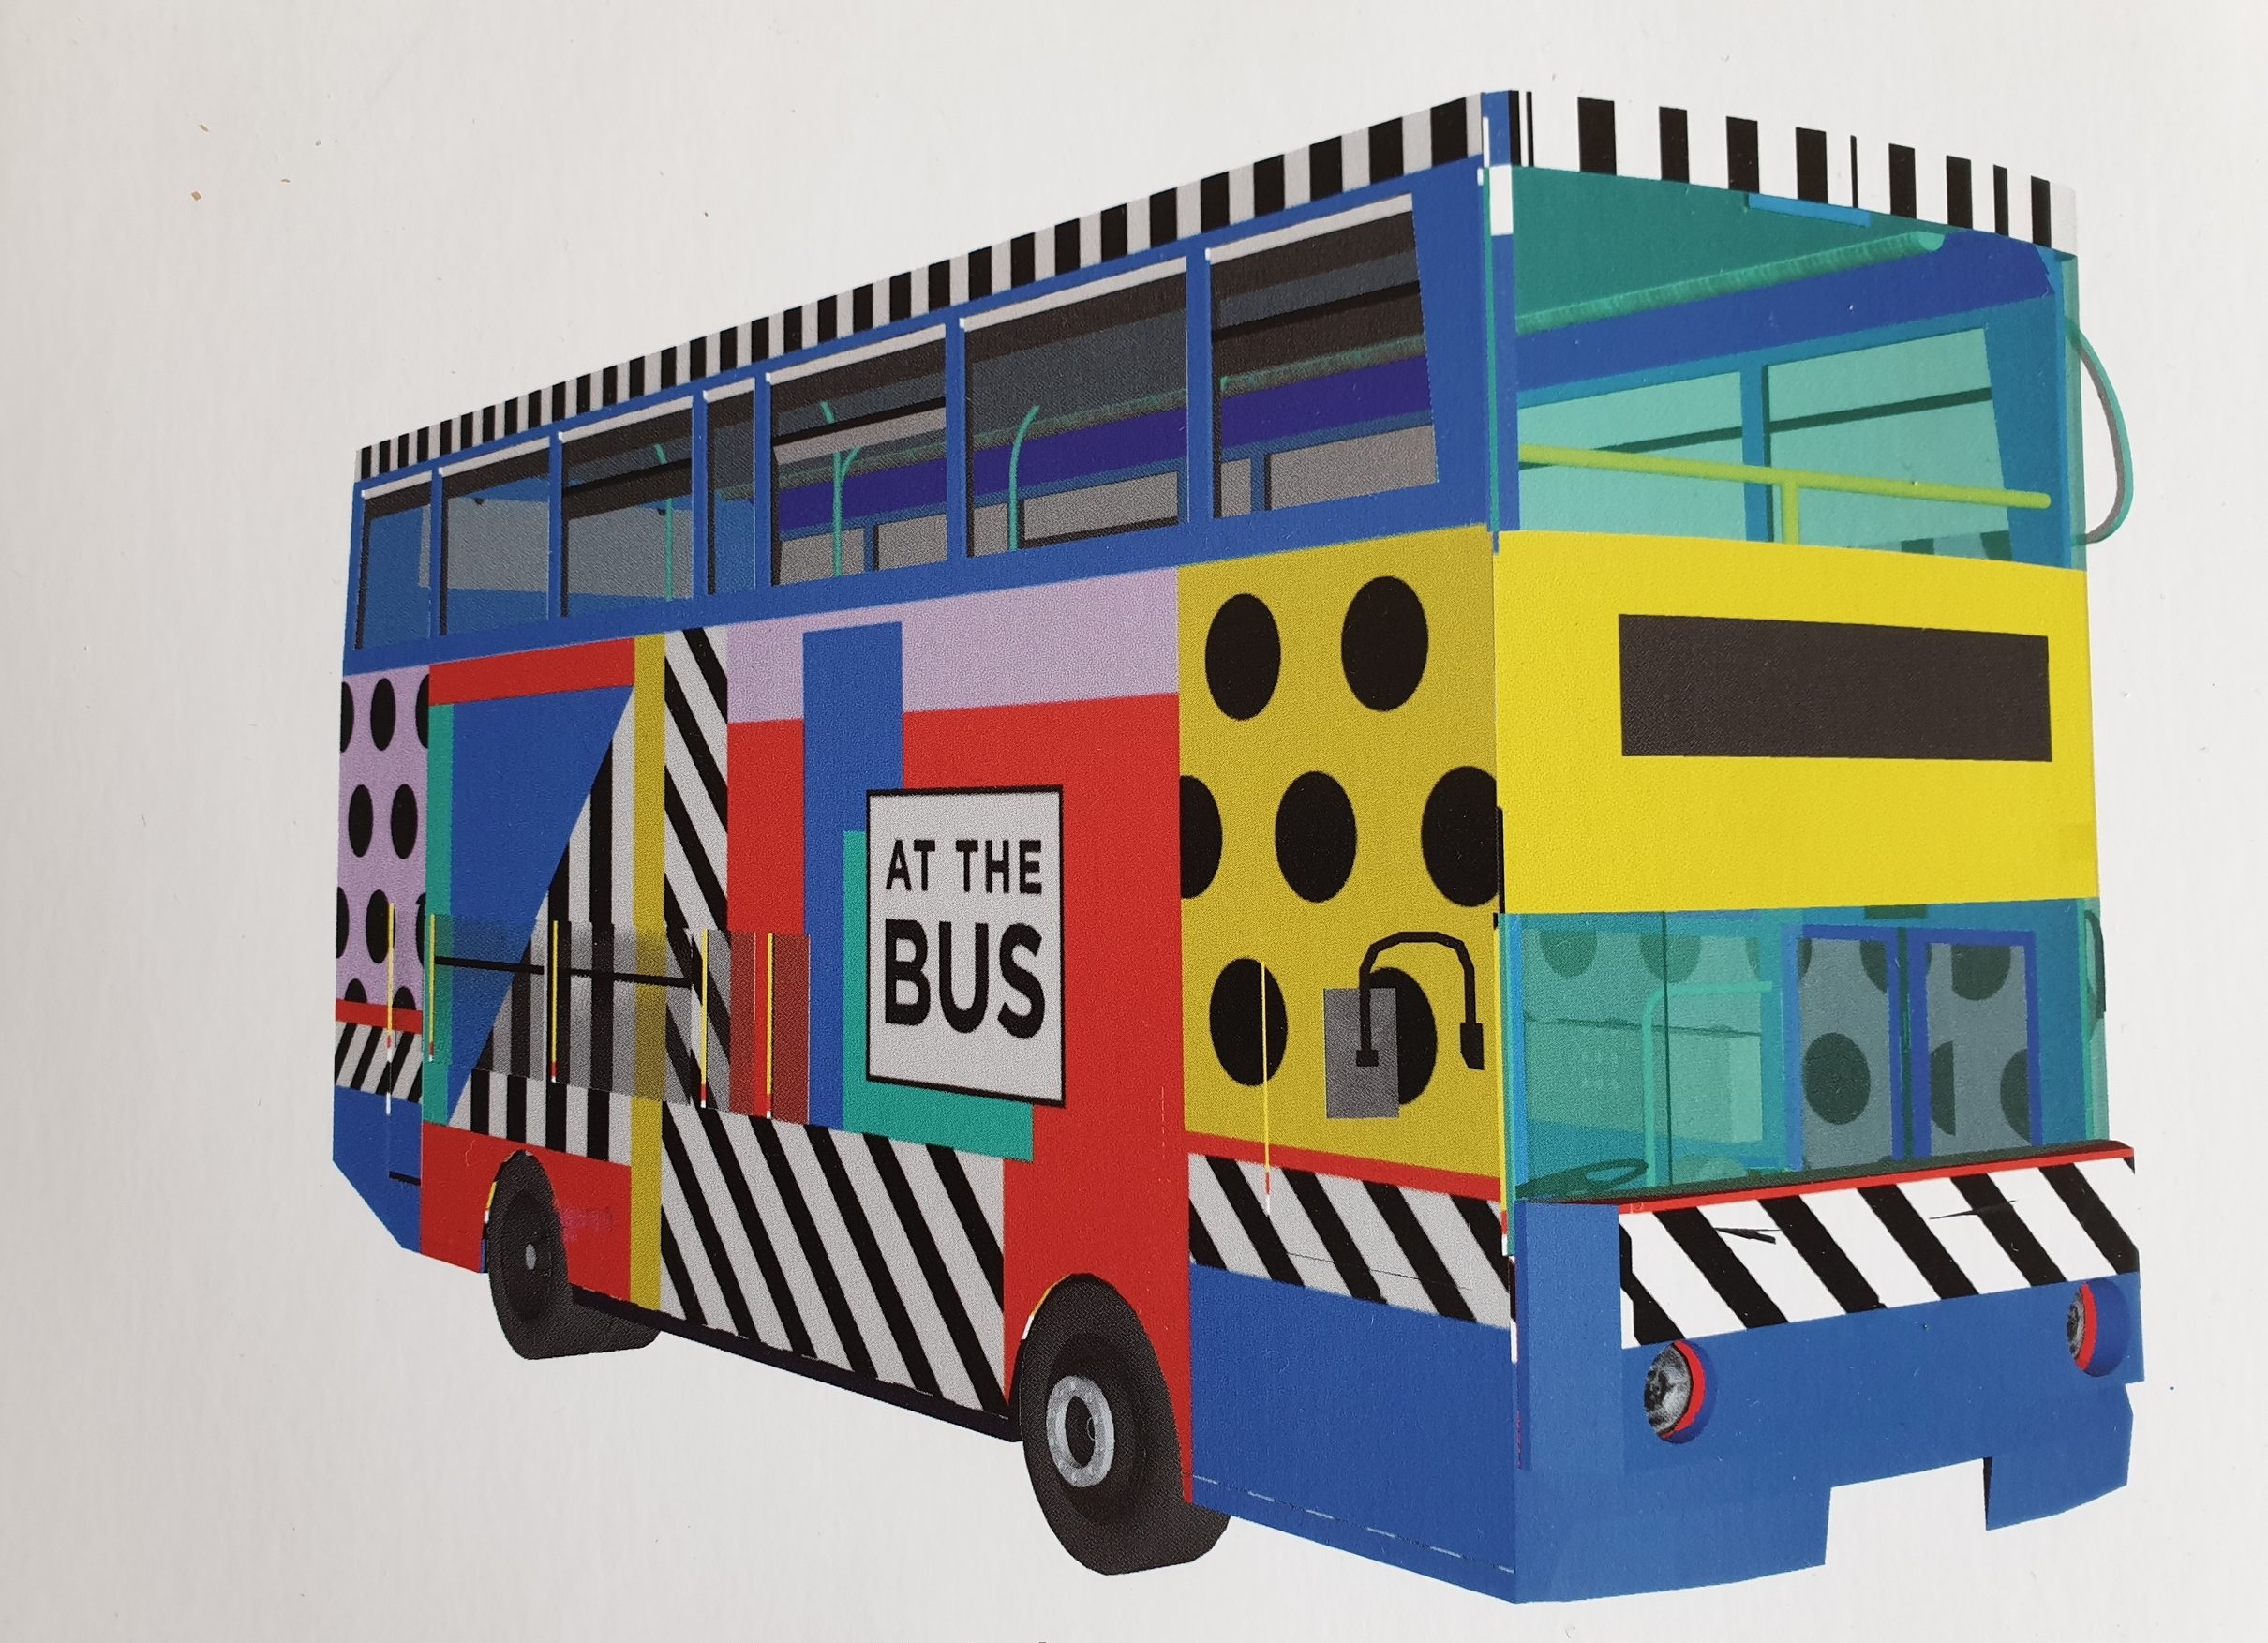 Bus design by Camille Walala